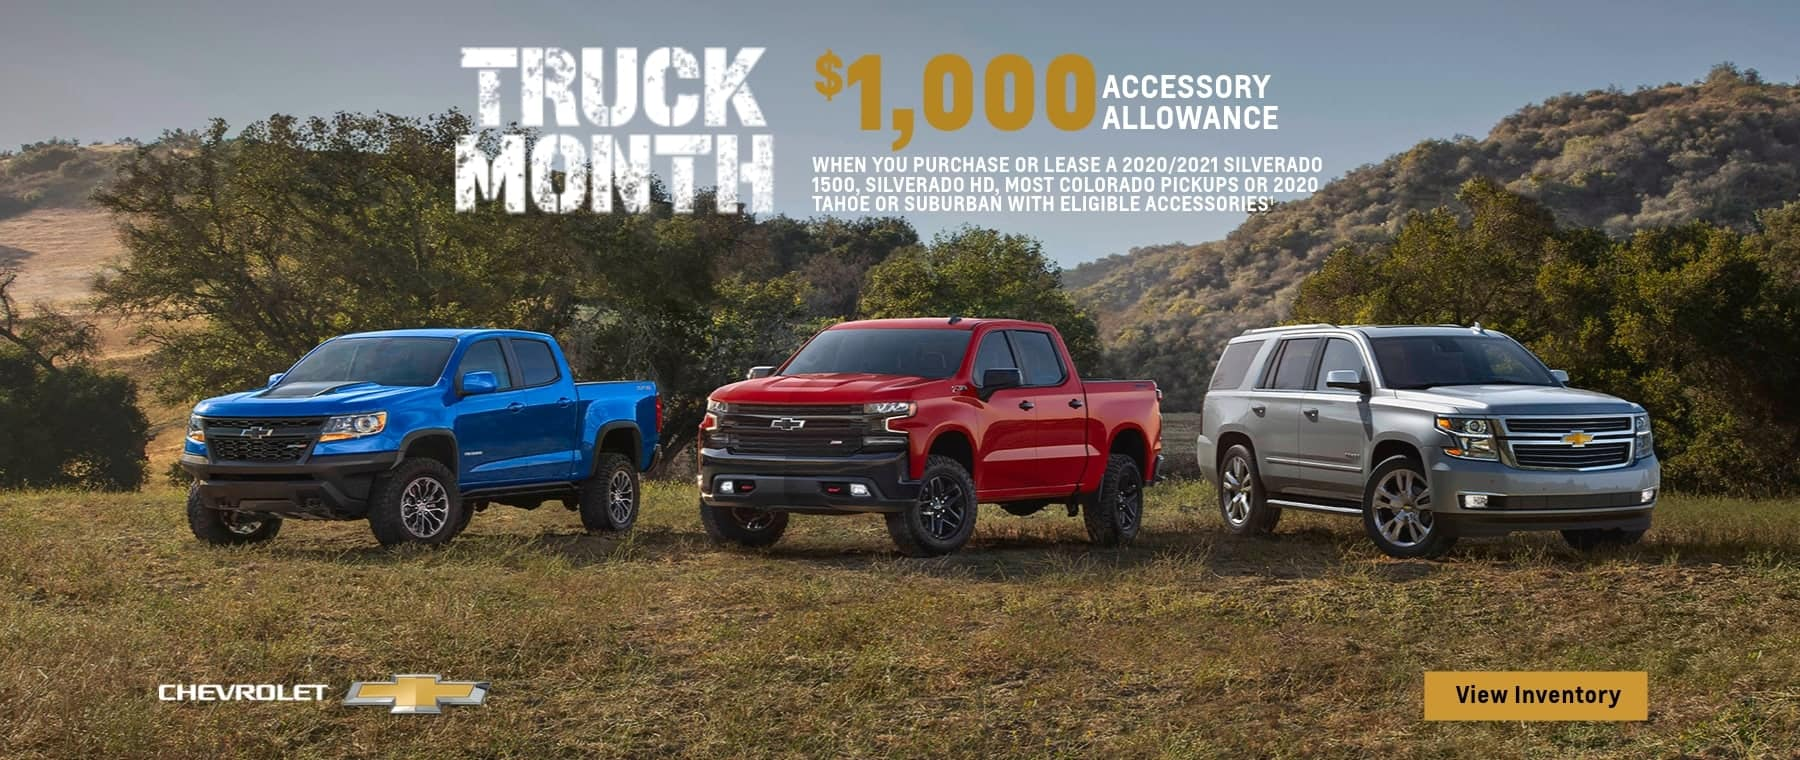 $1,000 Accessory Allowance When you purchase or lease a 2020/2021 Silverado 1500, Silverado HD, Most Colorado Pickups or 2020 Tahoe or Suburban Eligible Accessories.